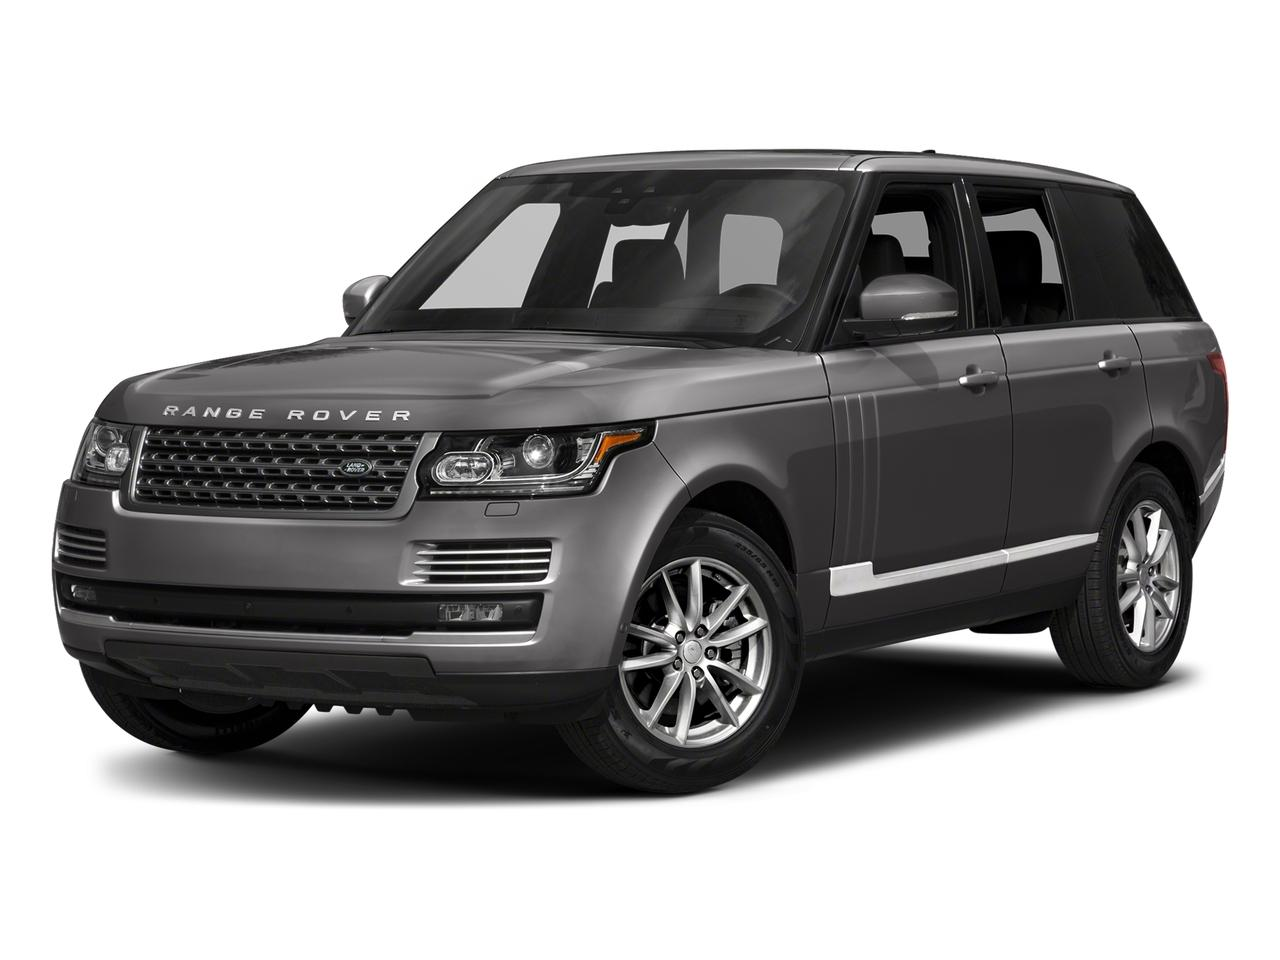 2017 Land Rover Range Rover Vehicle Photo in Tucson, AZ 85705